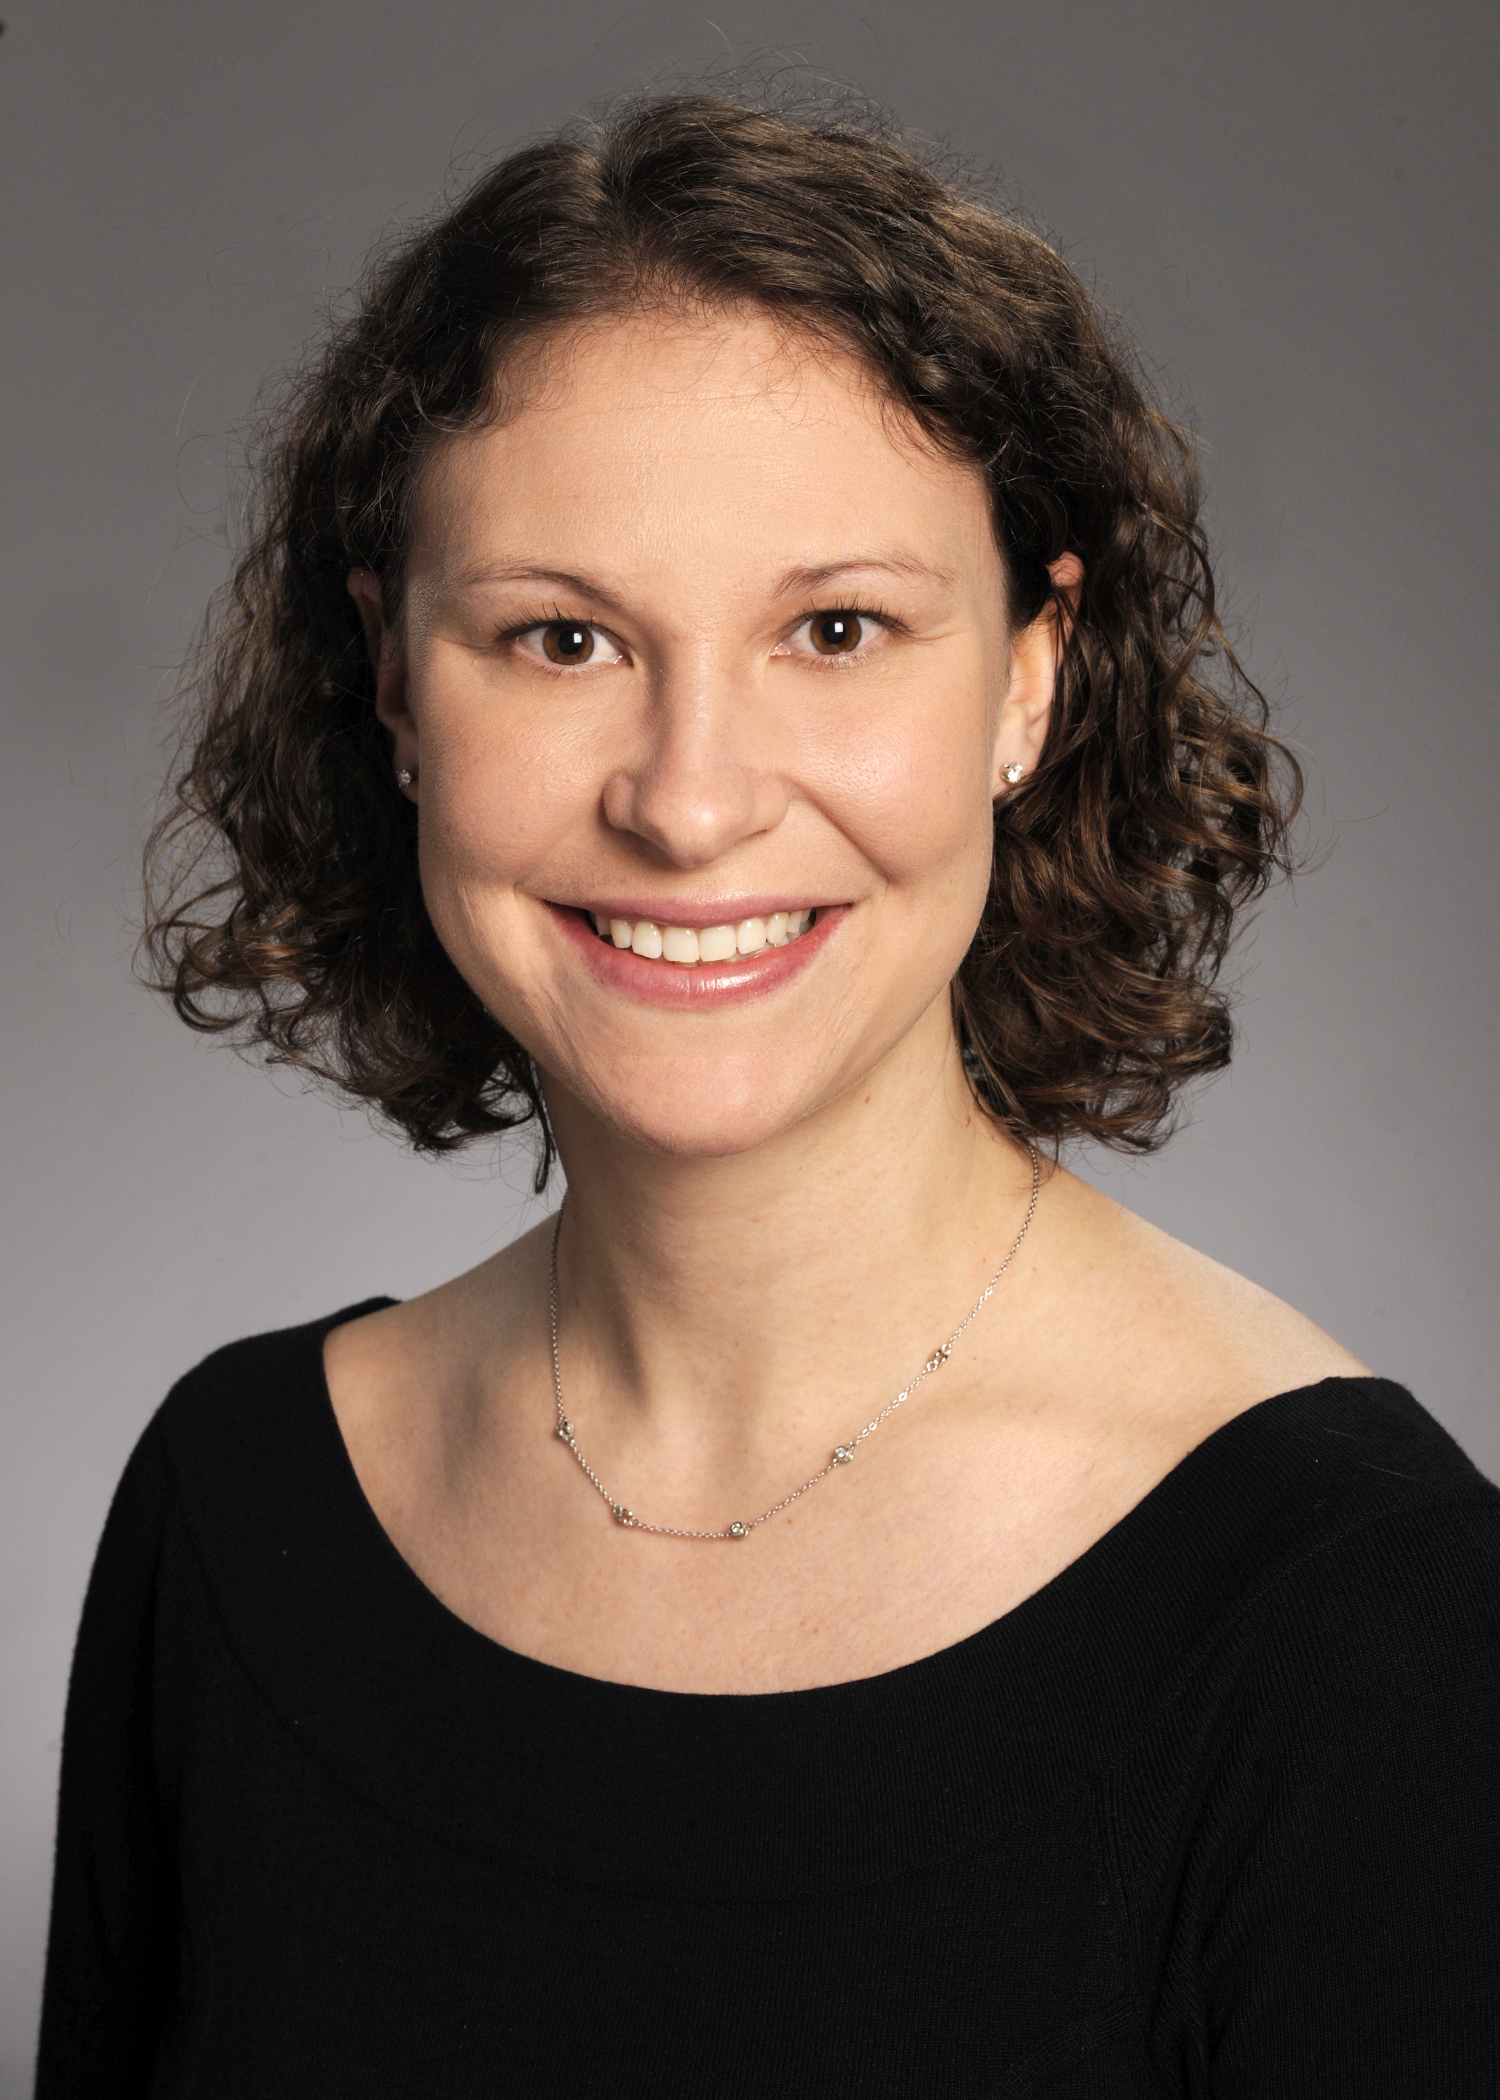 """Stefanie Reiff, MD is an Internal Medicine resident at Columbia University-NYP. Read her poem, """" Emergency Department """" in the Spring 2015 Intima."""